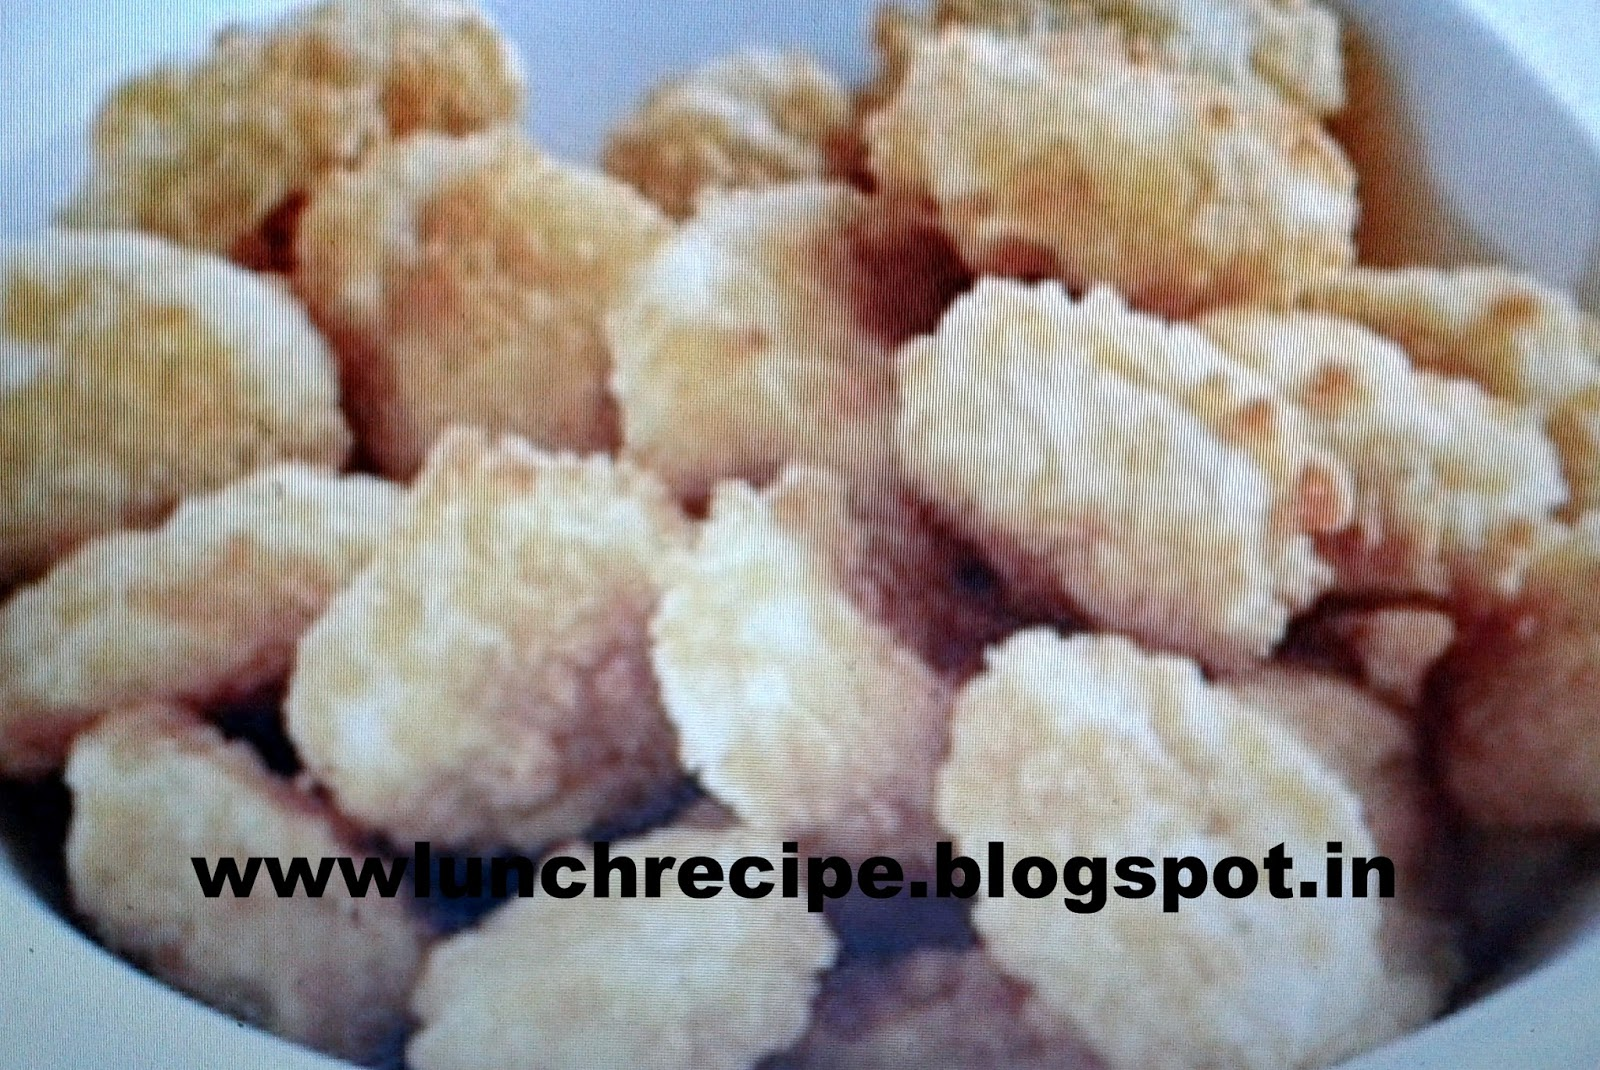 How to make Chicken Popcorns Recipe | चिकन पॉपकॉर्न | Chicken Popcorns Non Veg Recipe